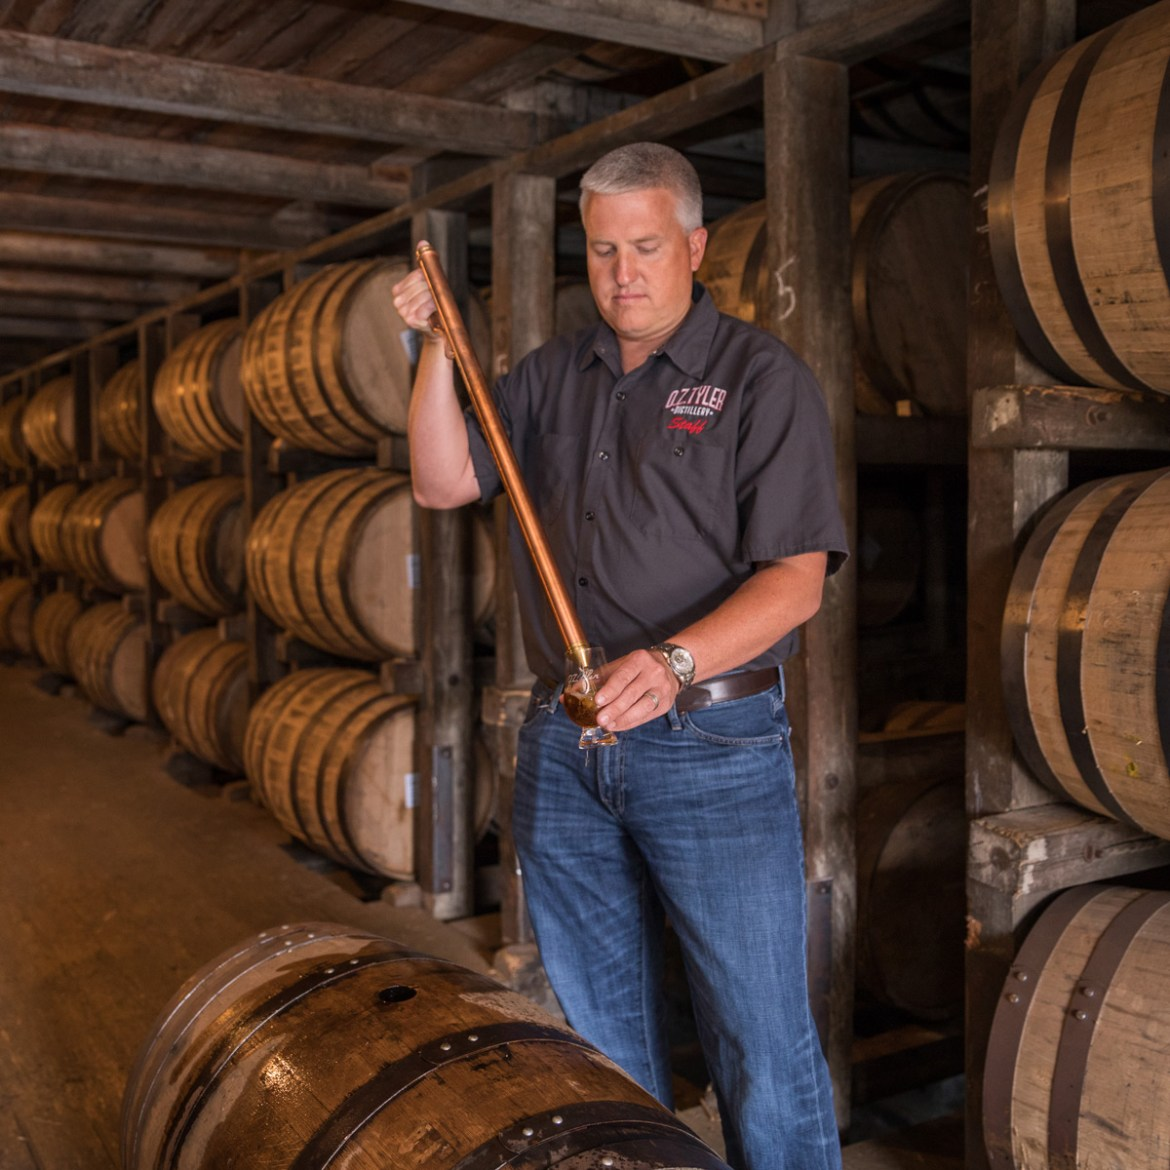 Sampling bourbon from the barrels